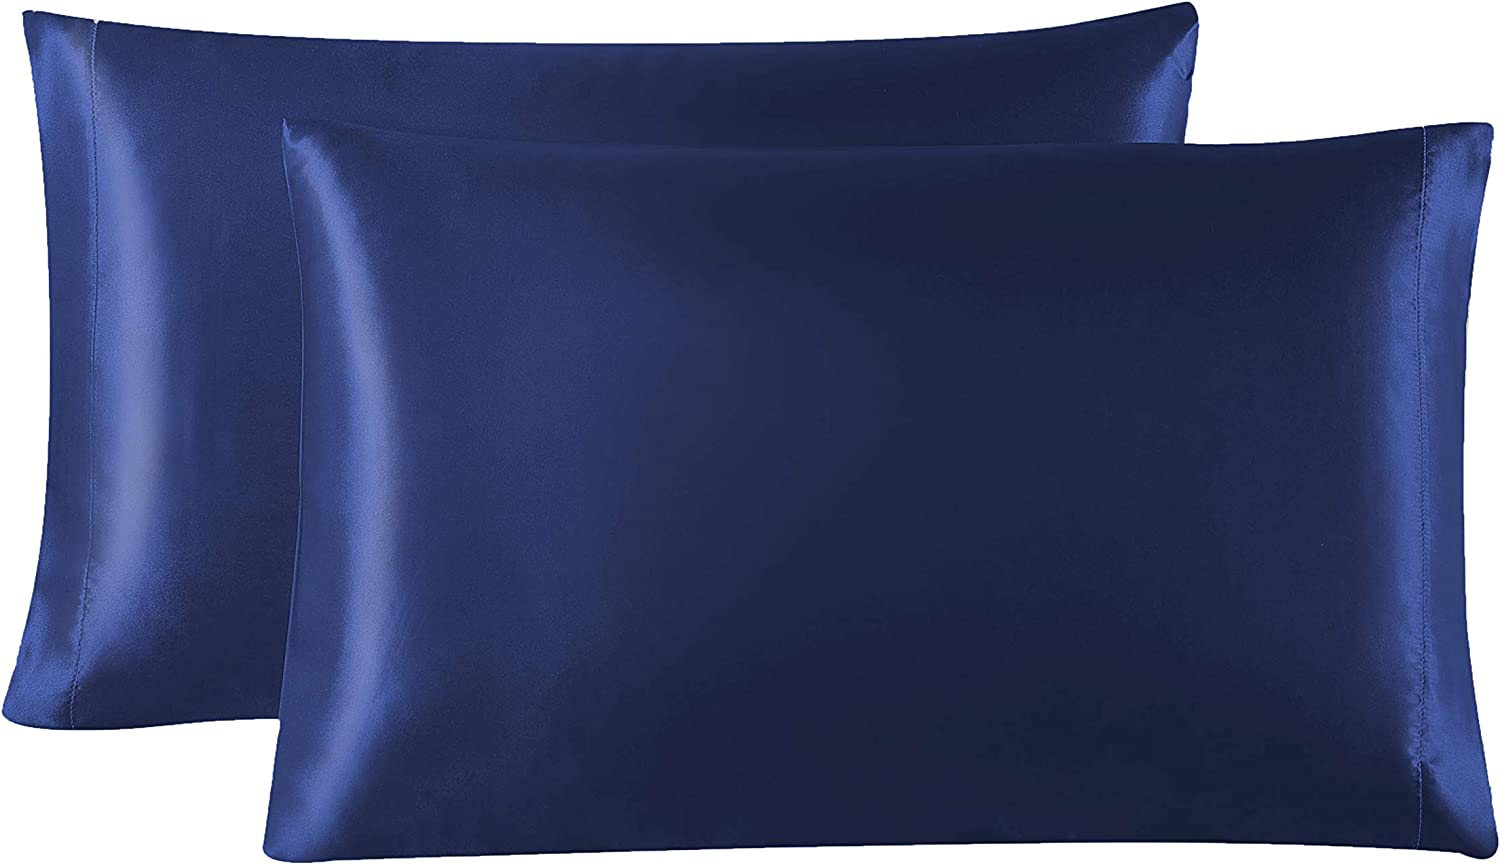 Love's cabin Silk Satin Pillowcase for Hair and Skin (Navy Blue, 20x26 inches) Slip Pillow Cases Standard Size Set of 2 - Satin Cooling Pillow Covers with Envelope Closure